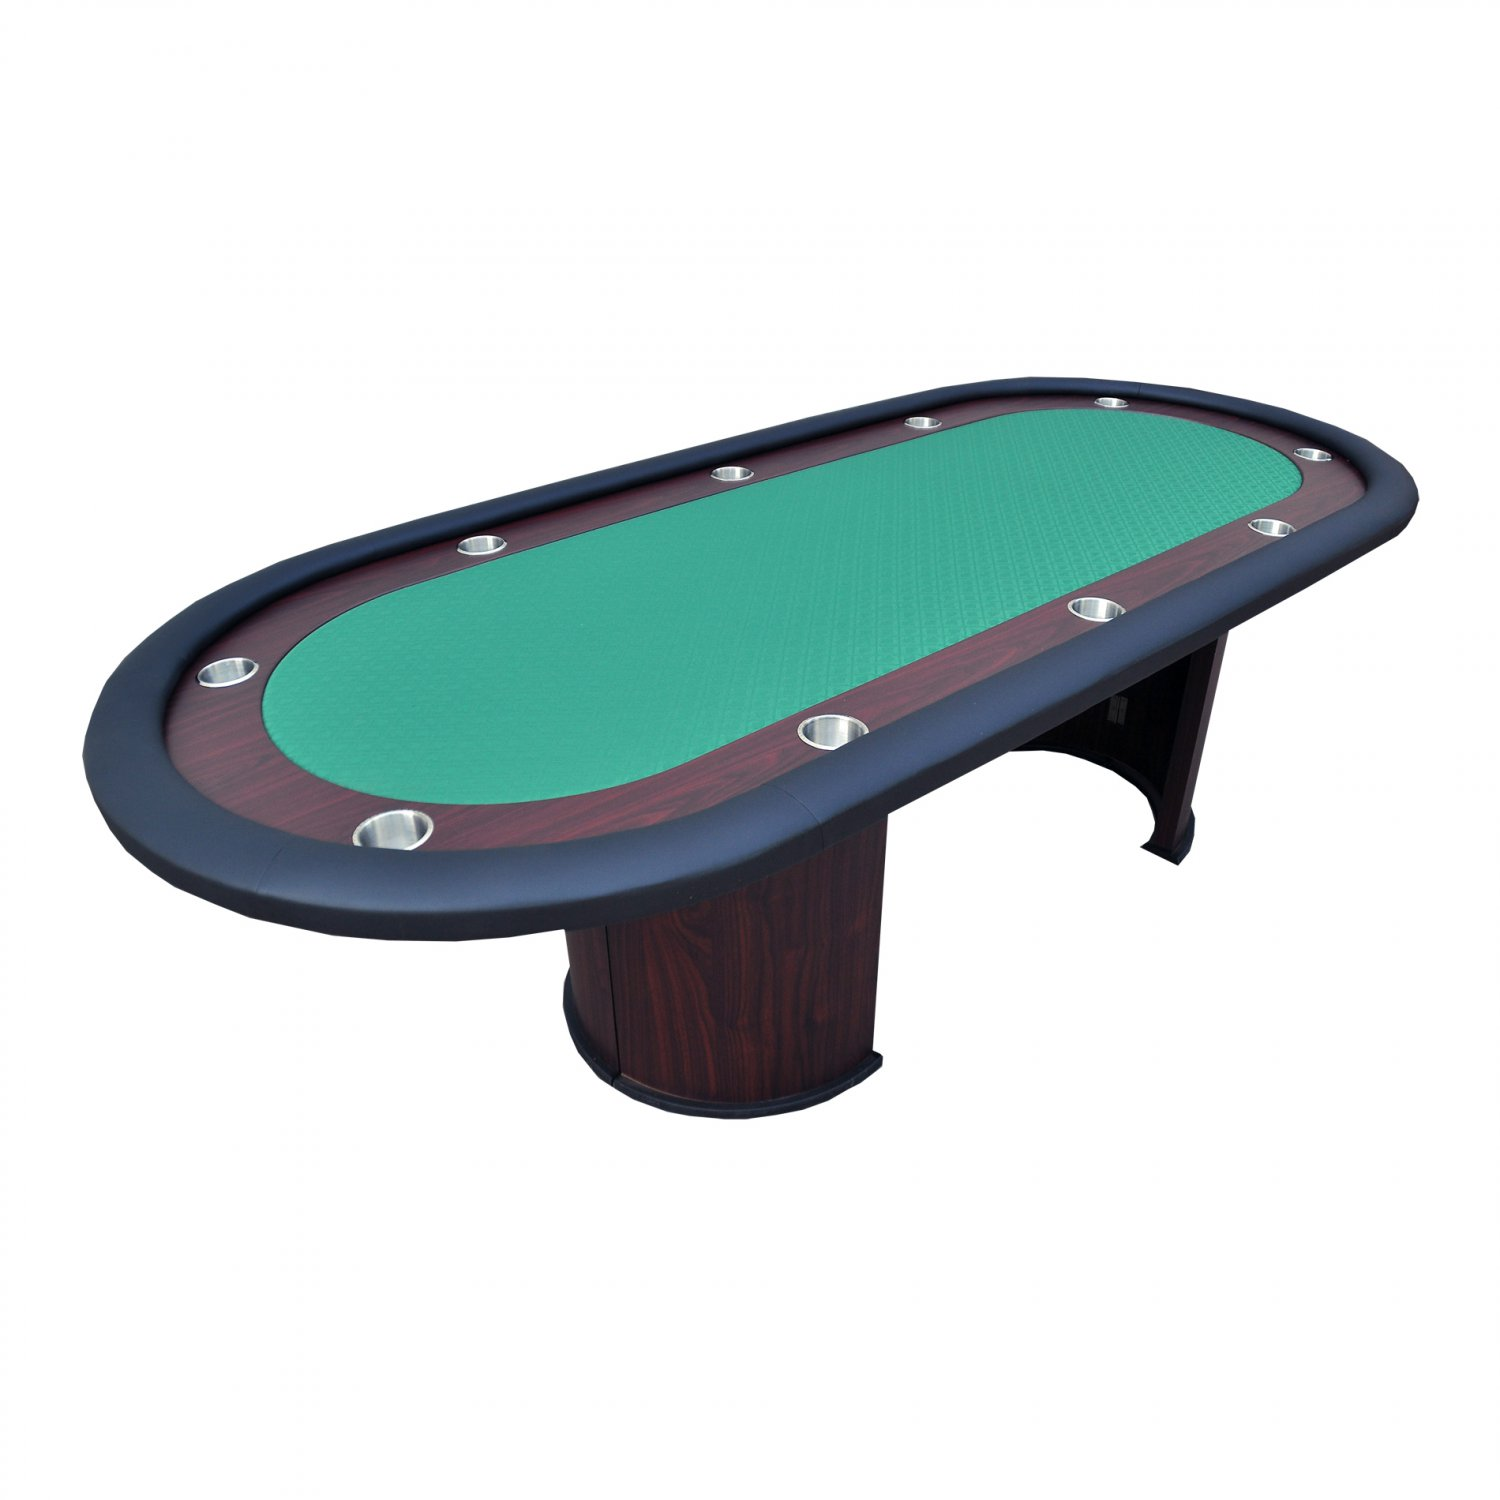 "96"" Professional Texas Holdem Casino Poker Table Green Ver.2(Ship US Country Only) #16365-G#"